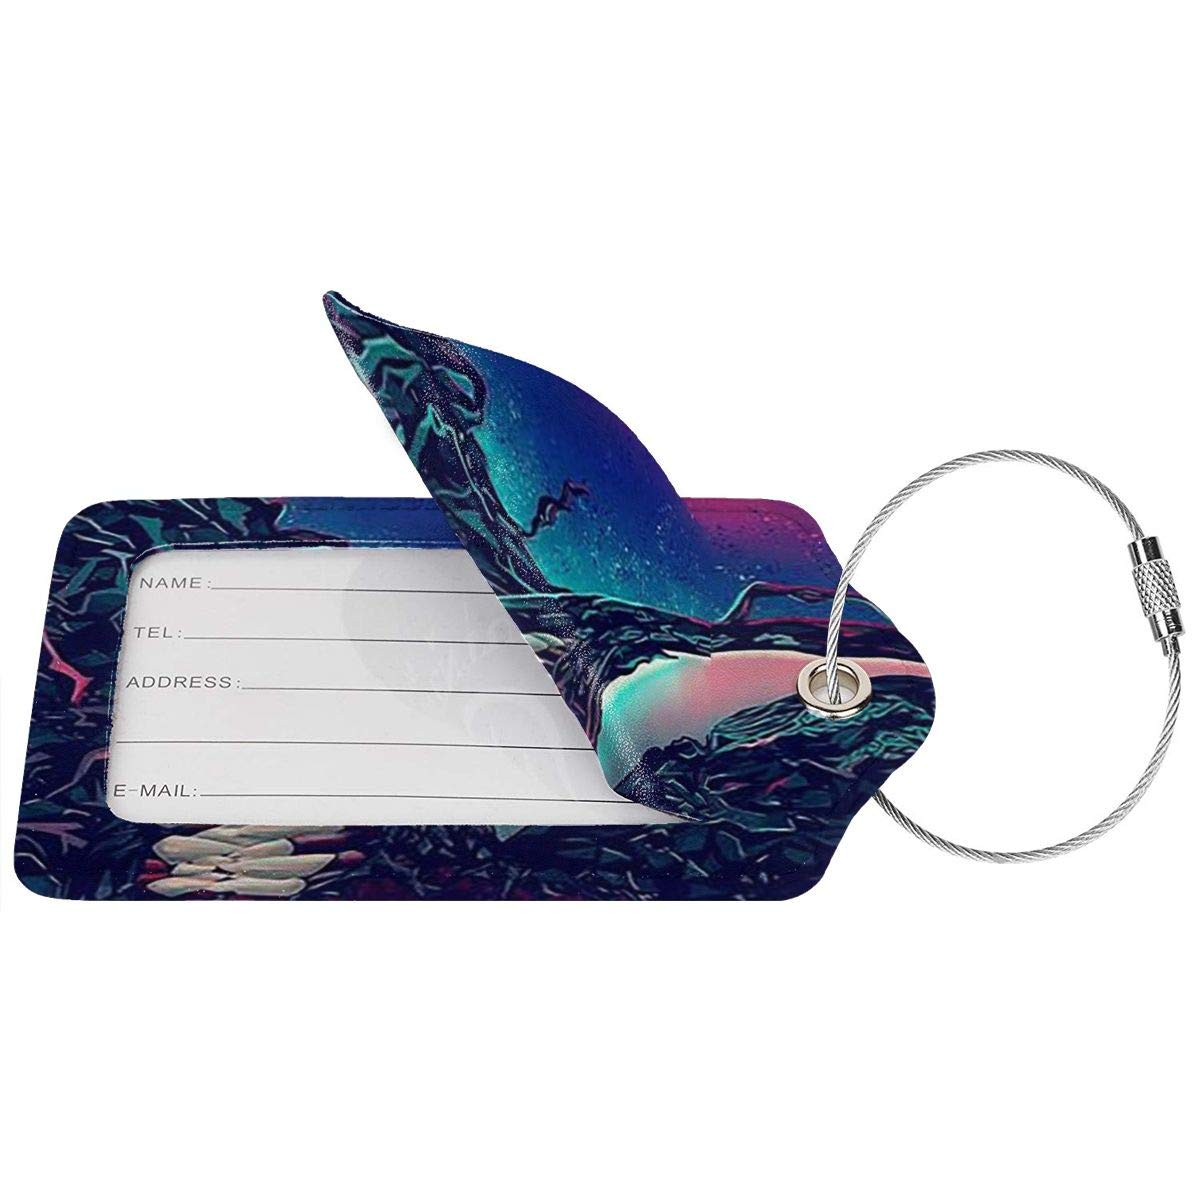 Fashion Venom Soft Leather Luggage Tags With Privacy Cover 1-4 Pcs Choose Suit For Travel,Vacation